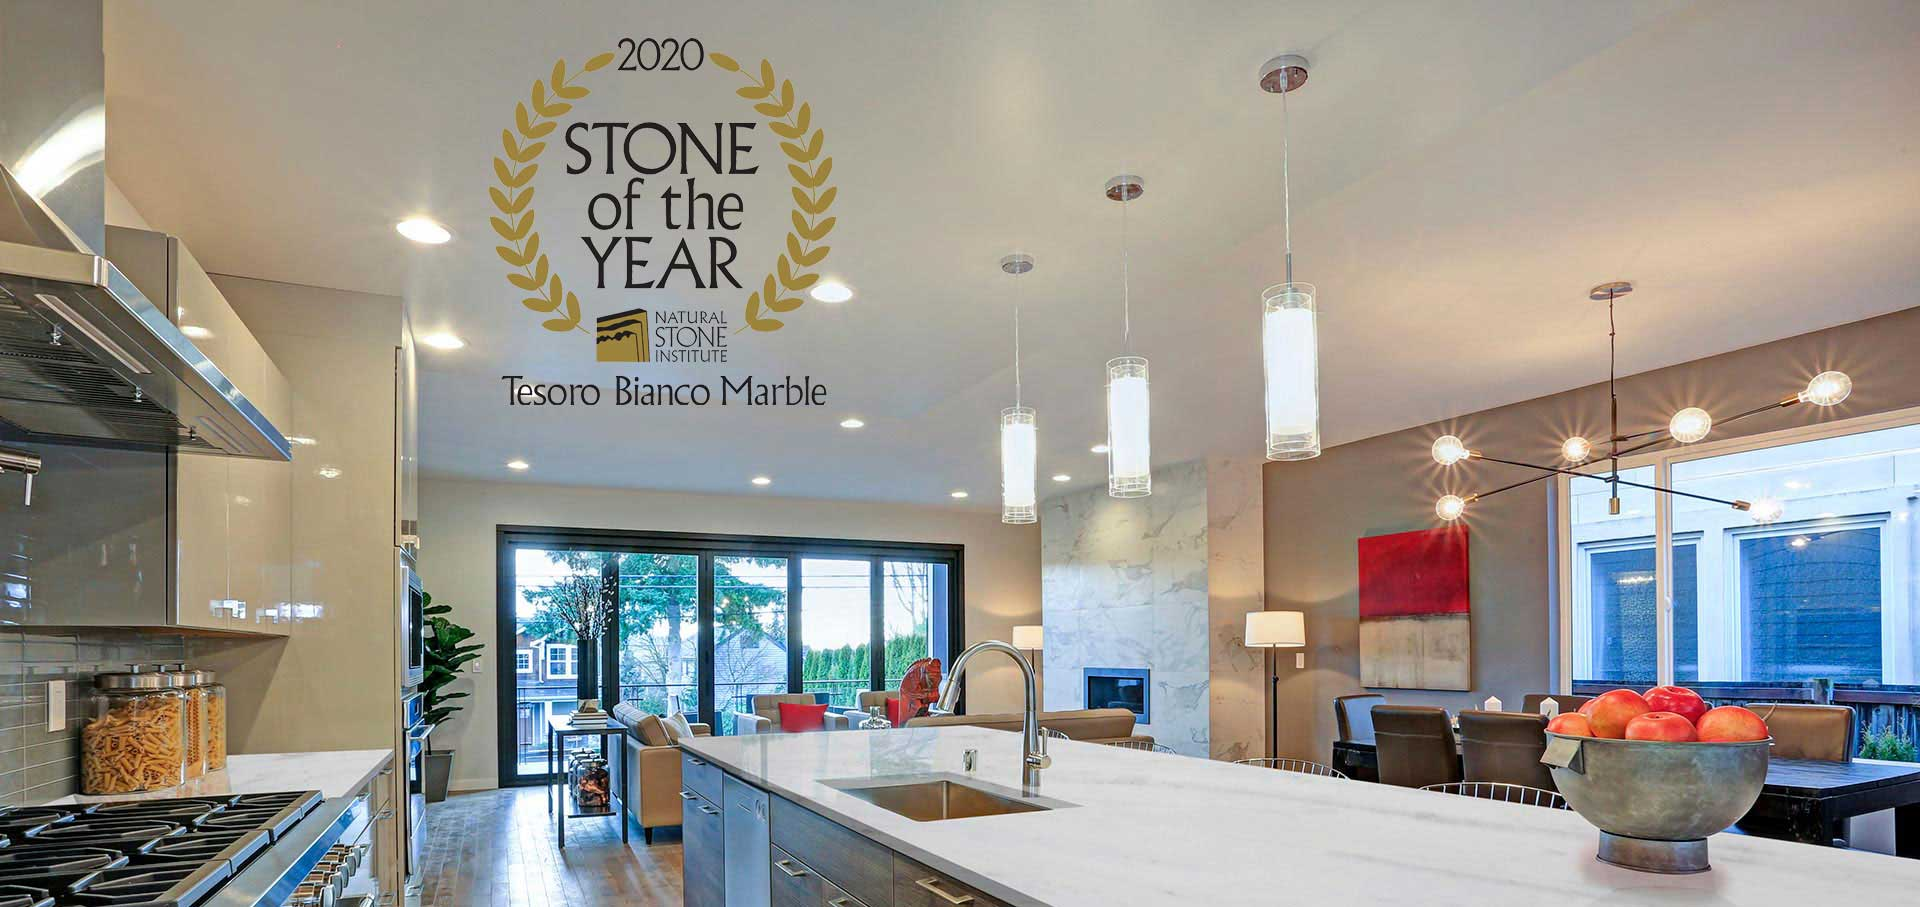 marble tesoro bianco kitchen stone of the year home